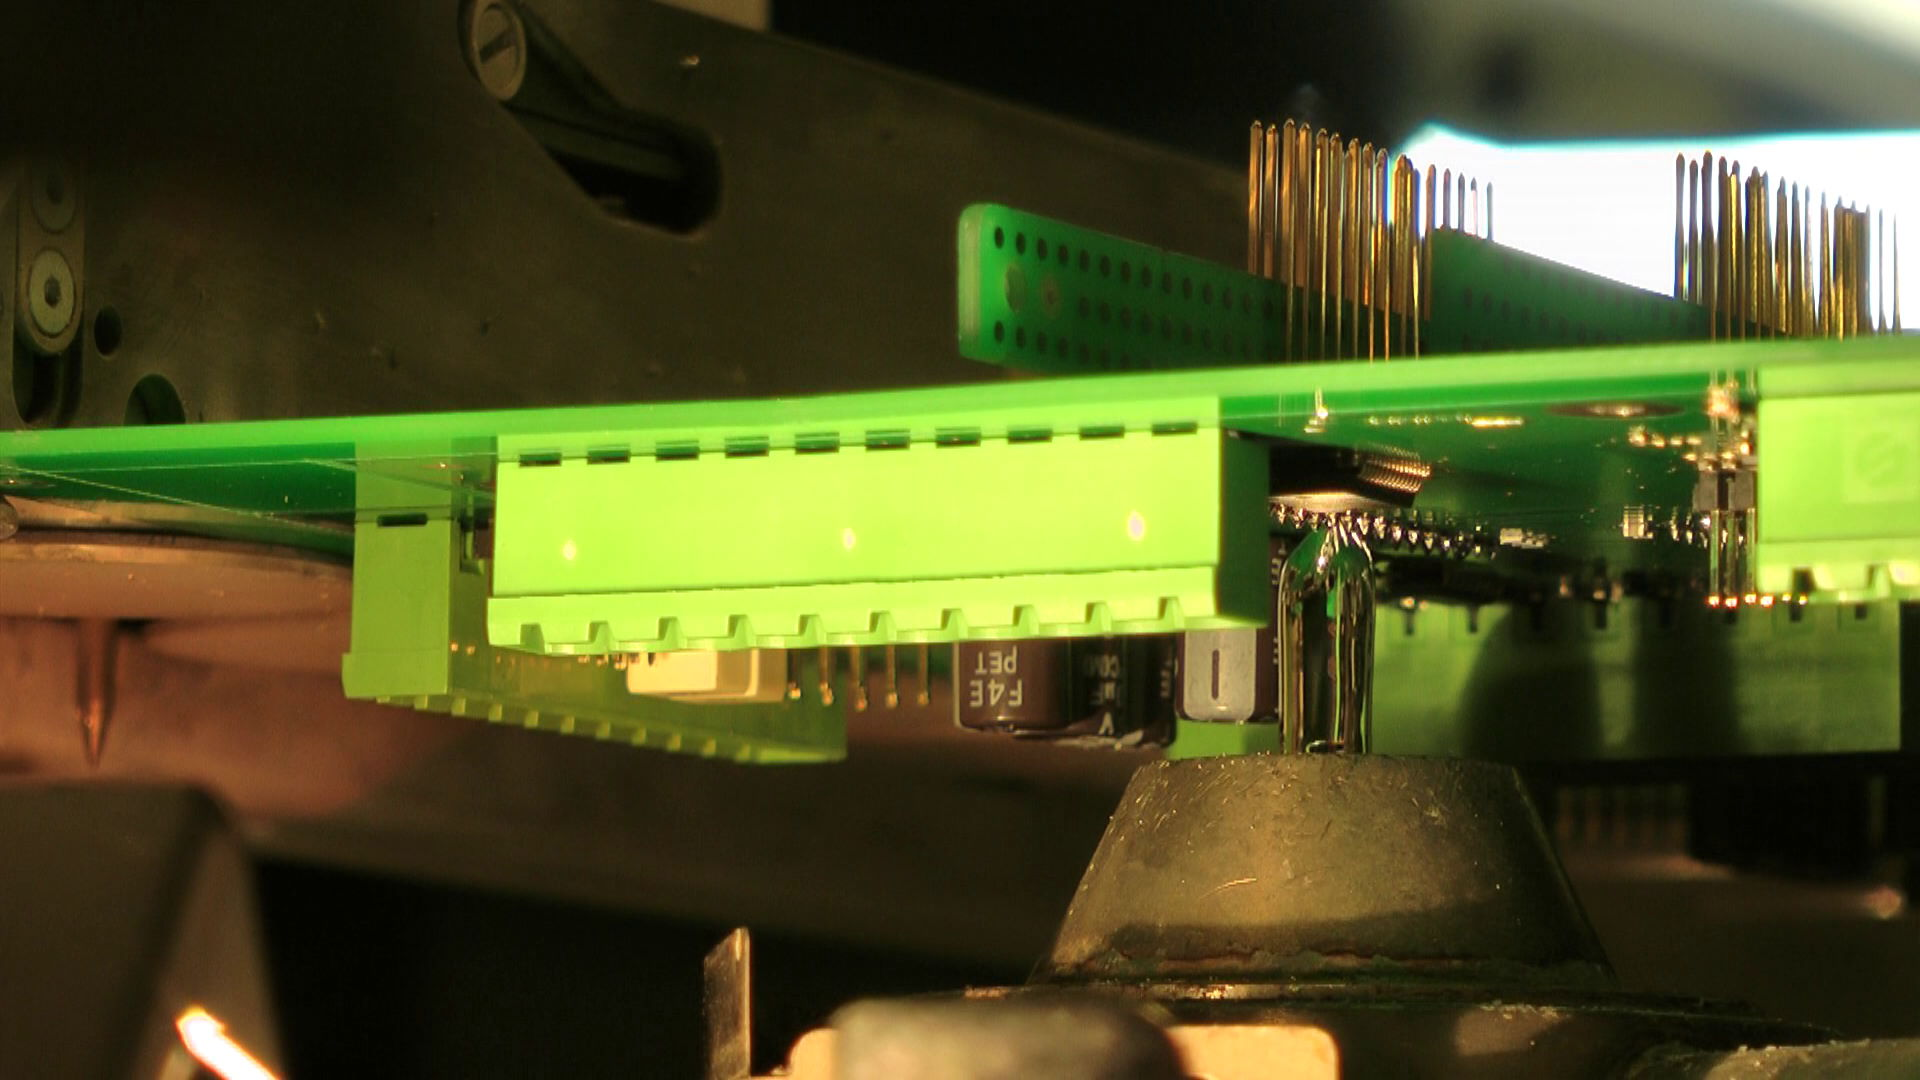 Torola Electronic Custom Production Printed Circuit Board Manufacturing Equipment Machine Soldering The Mounted Boards